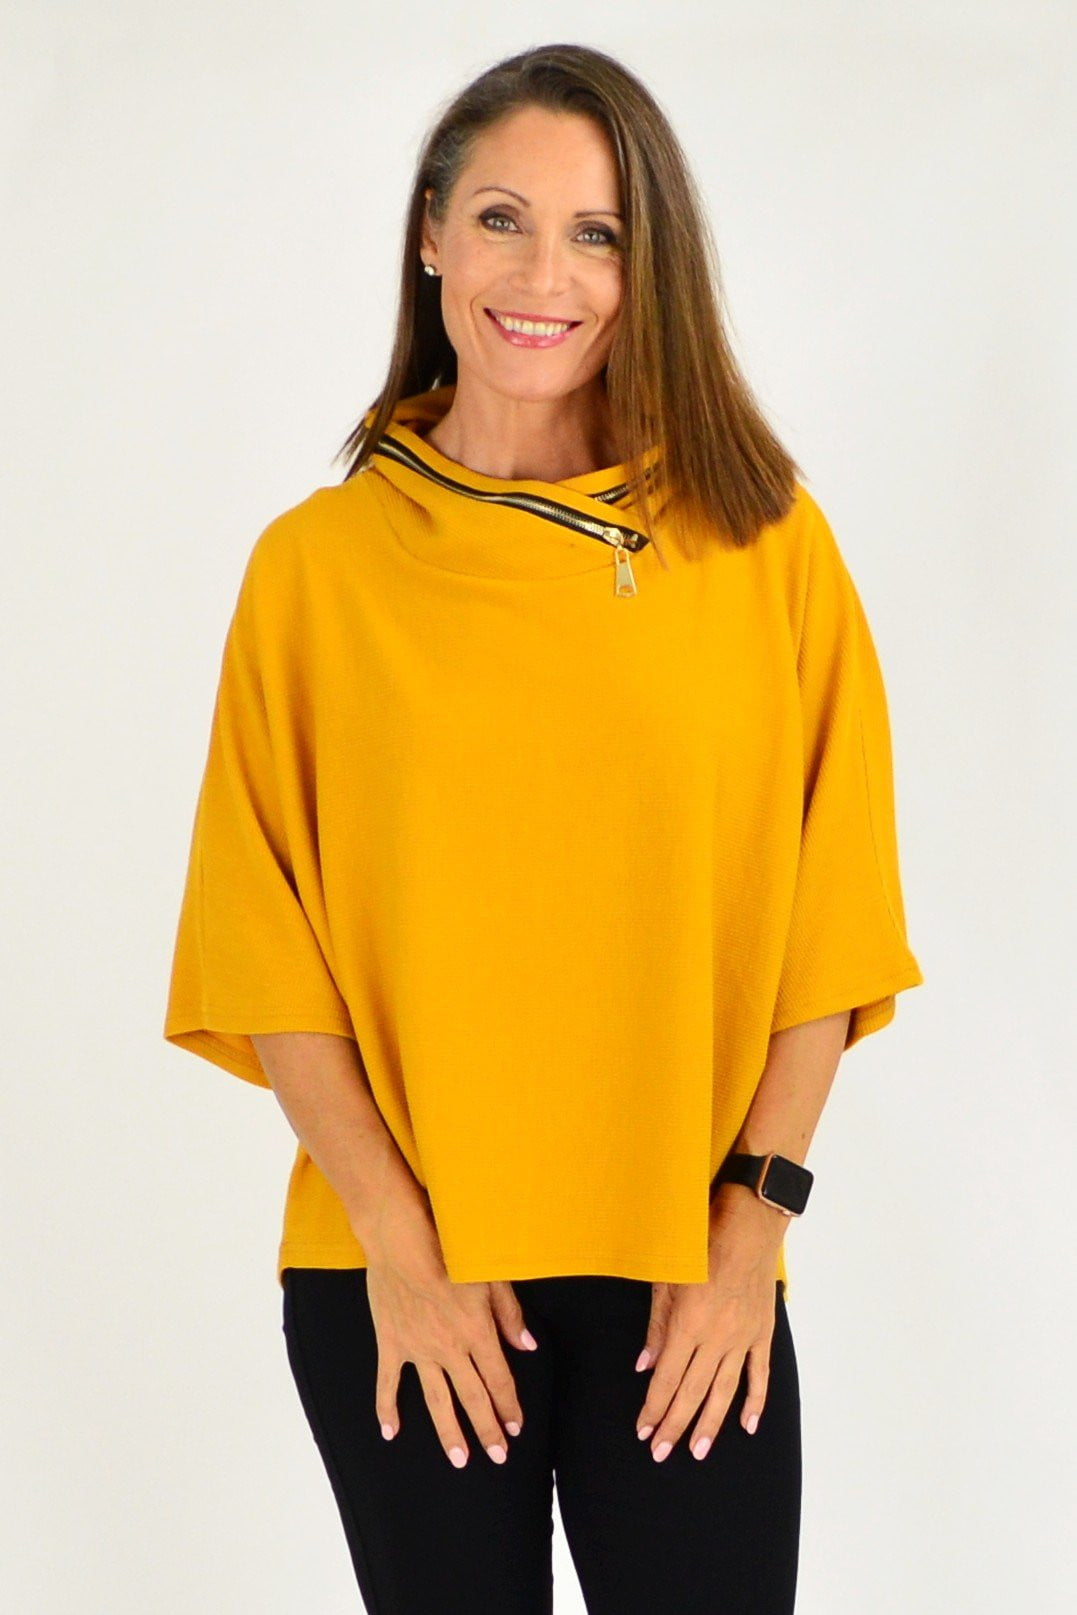 Central Park Tunic Top - at I Love Tunics @ www.ilovetunics.com = Number One! Tunics Destination